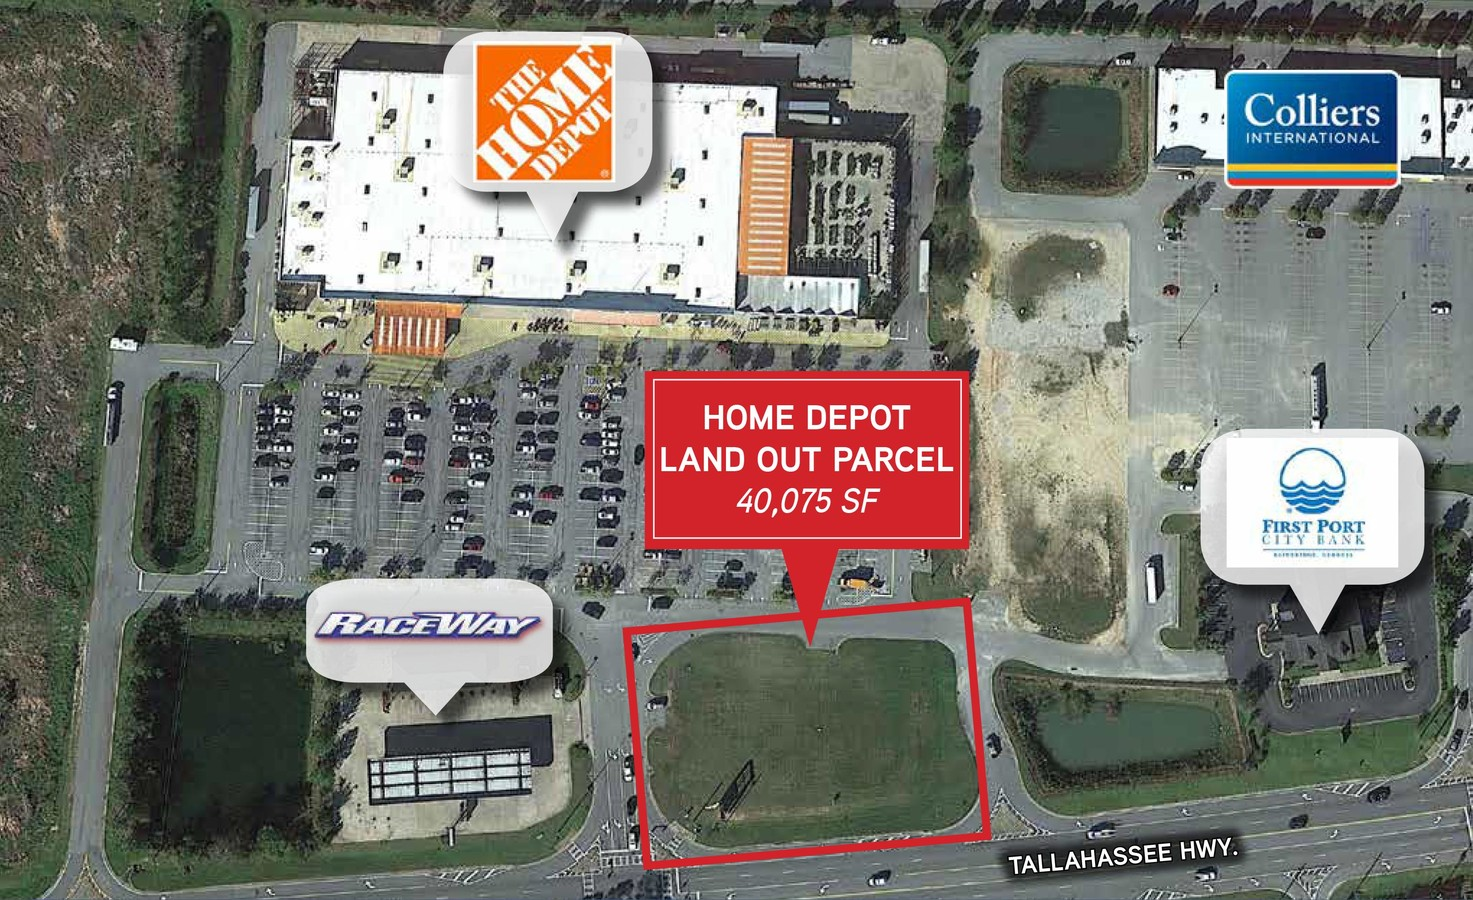 Bank St Home Depot 1414 Tallahassee Hwy Bainbridge Ga 39819 Commercial Property